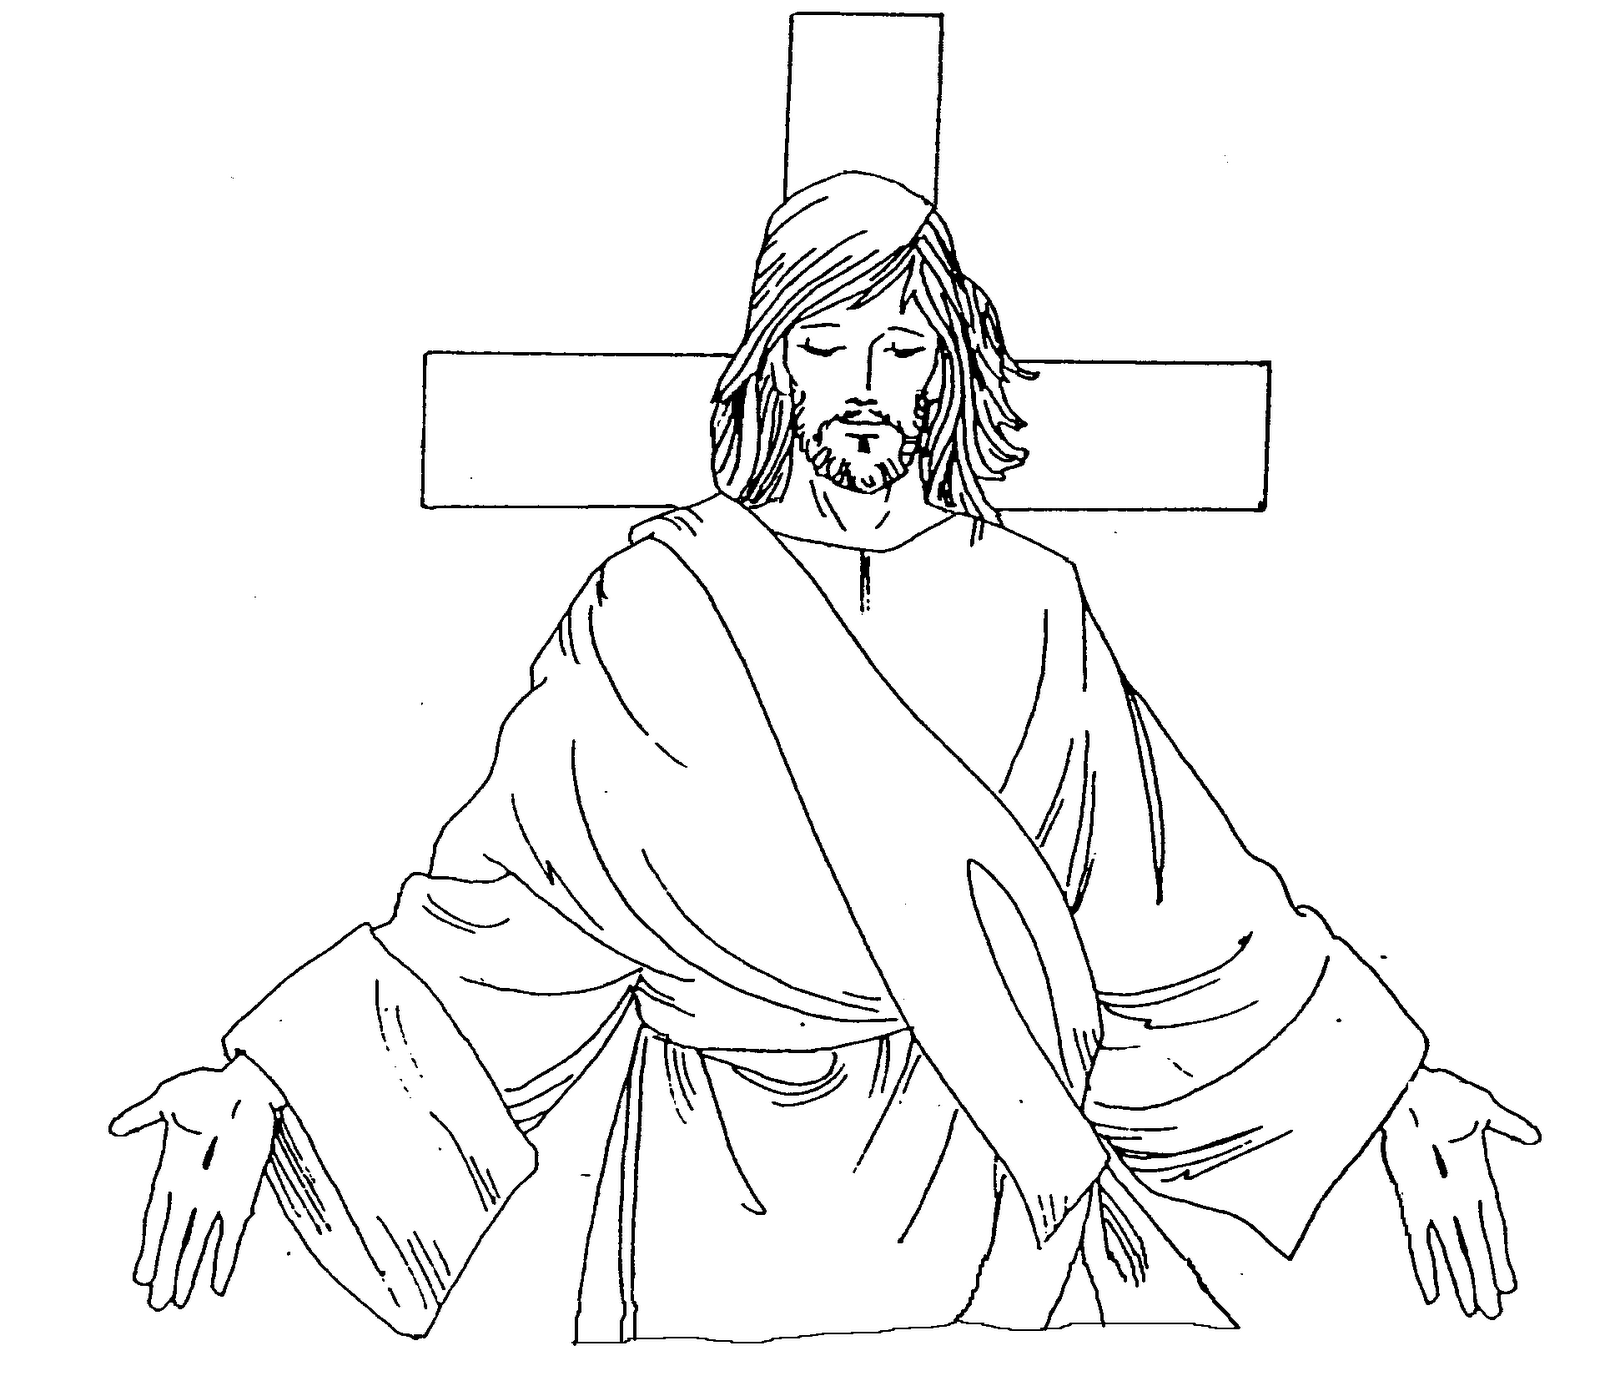 Coloring pages jesus christ - Christ Our Savior Catholic Coloring Page I Have Come That They May Have Life